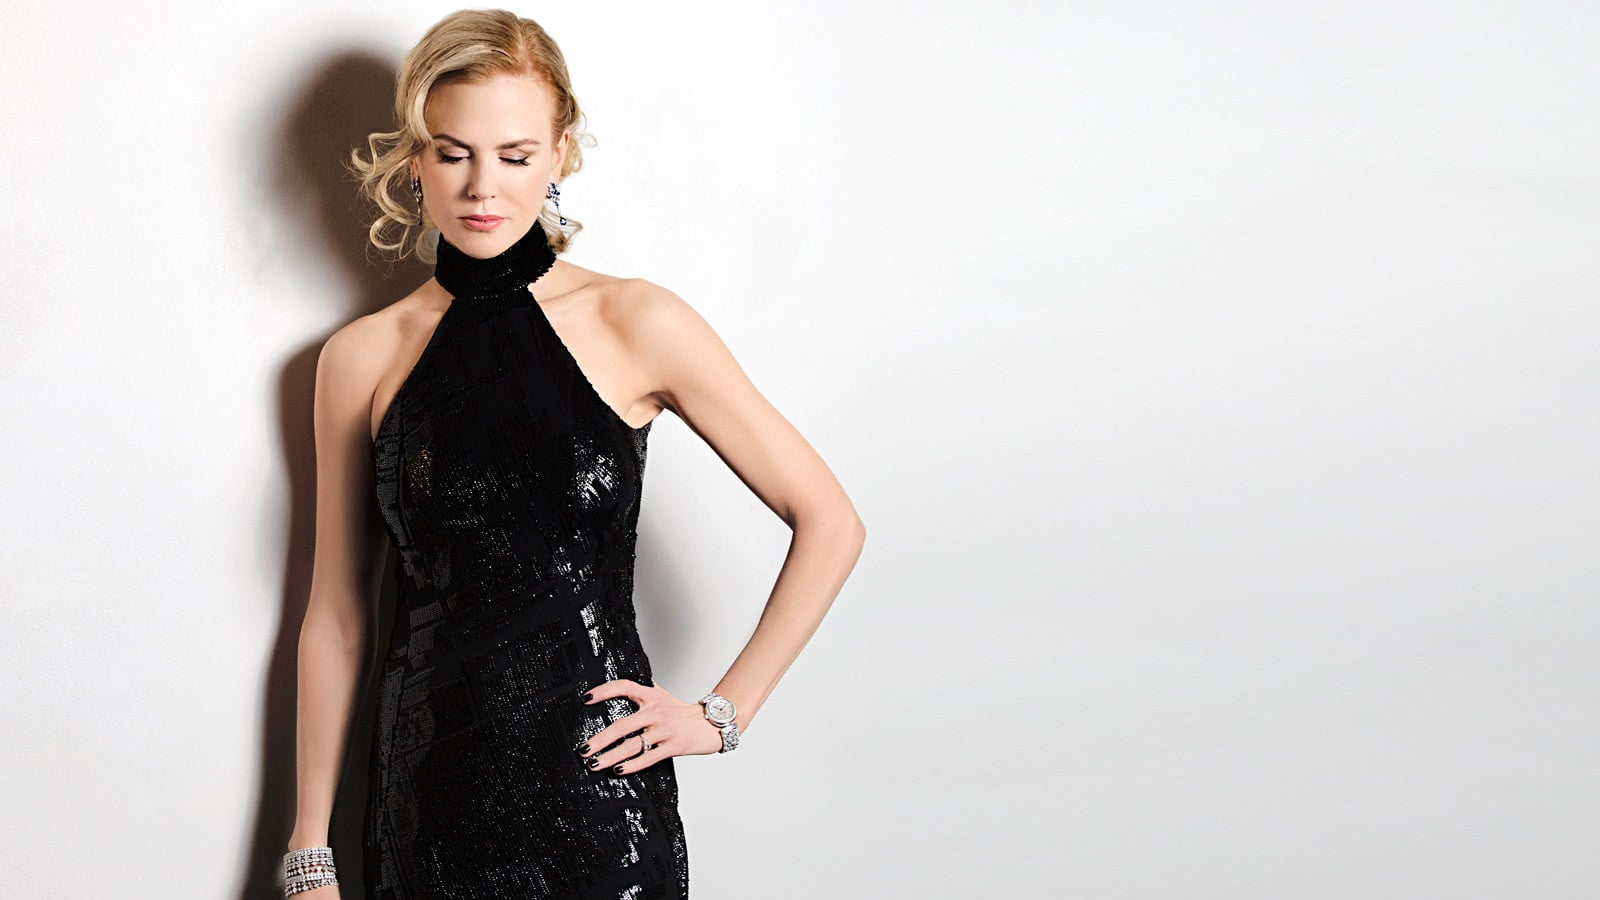 Picture of Nicole Kidman in black dress in front of a grey wall